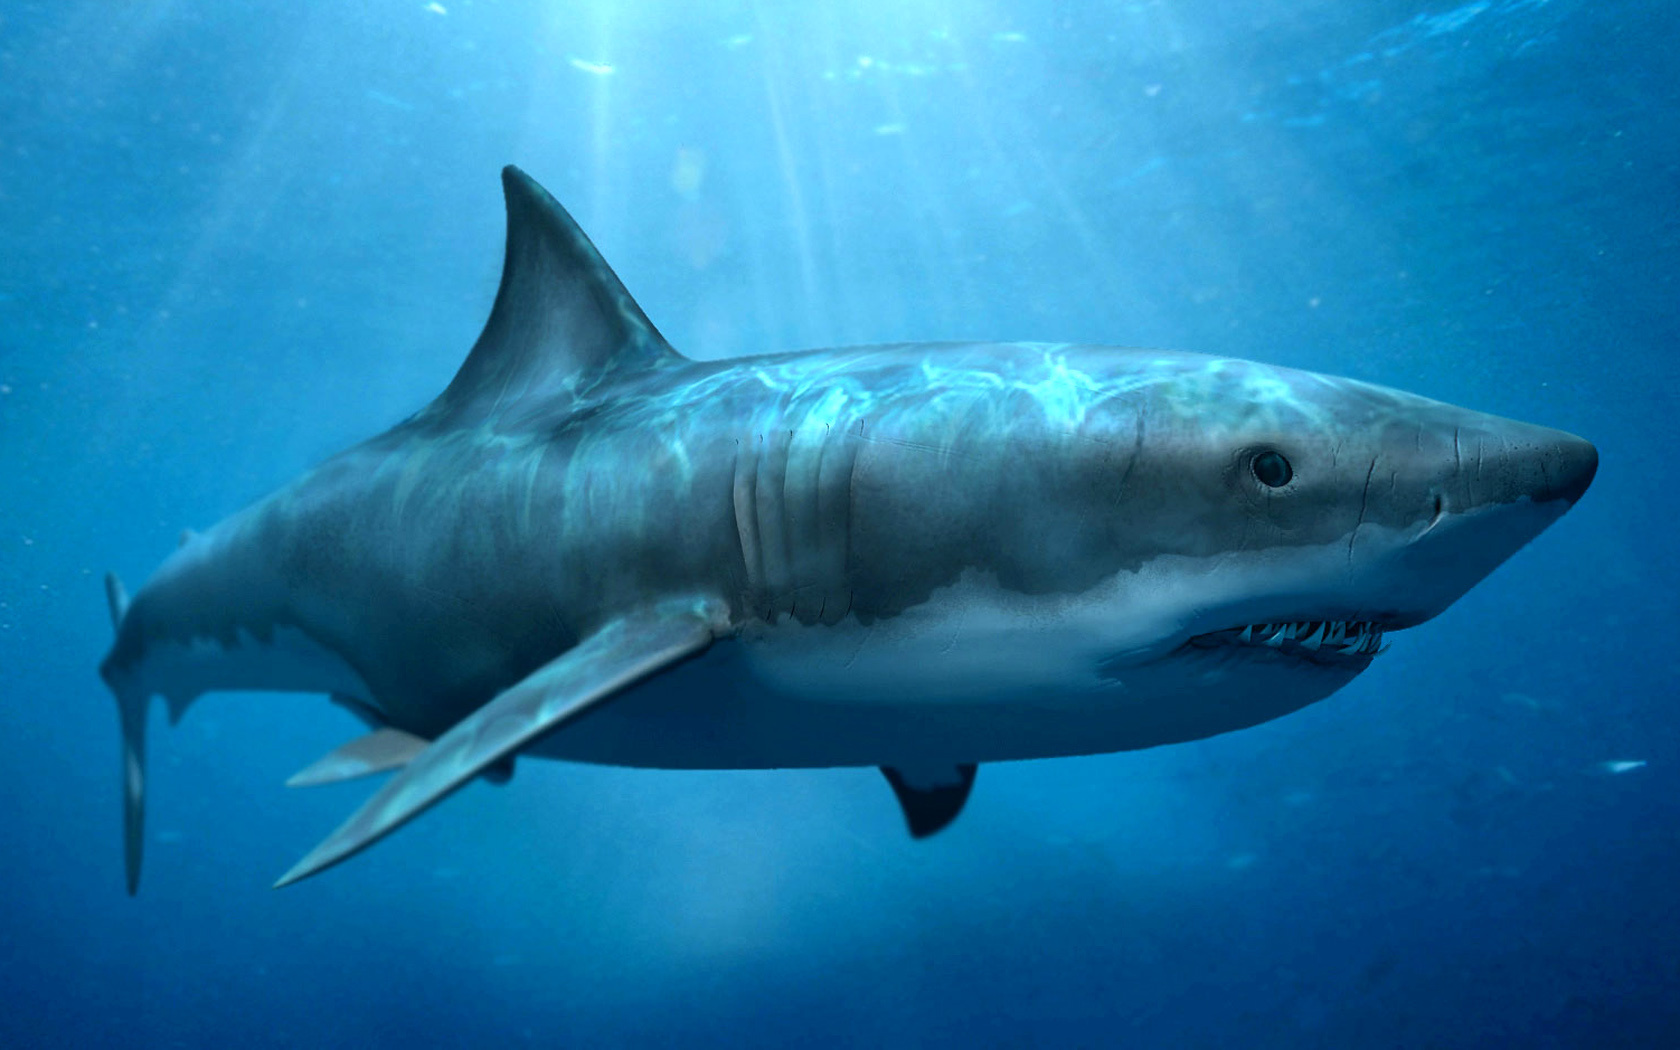 19537 download wallpaper Animals, Sea, Sharks, Fishes screensavers and pictures for free